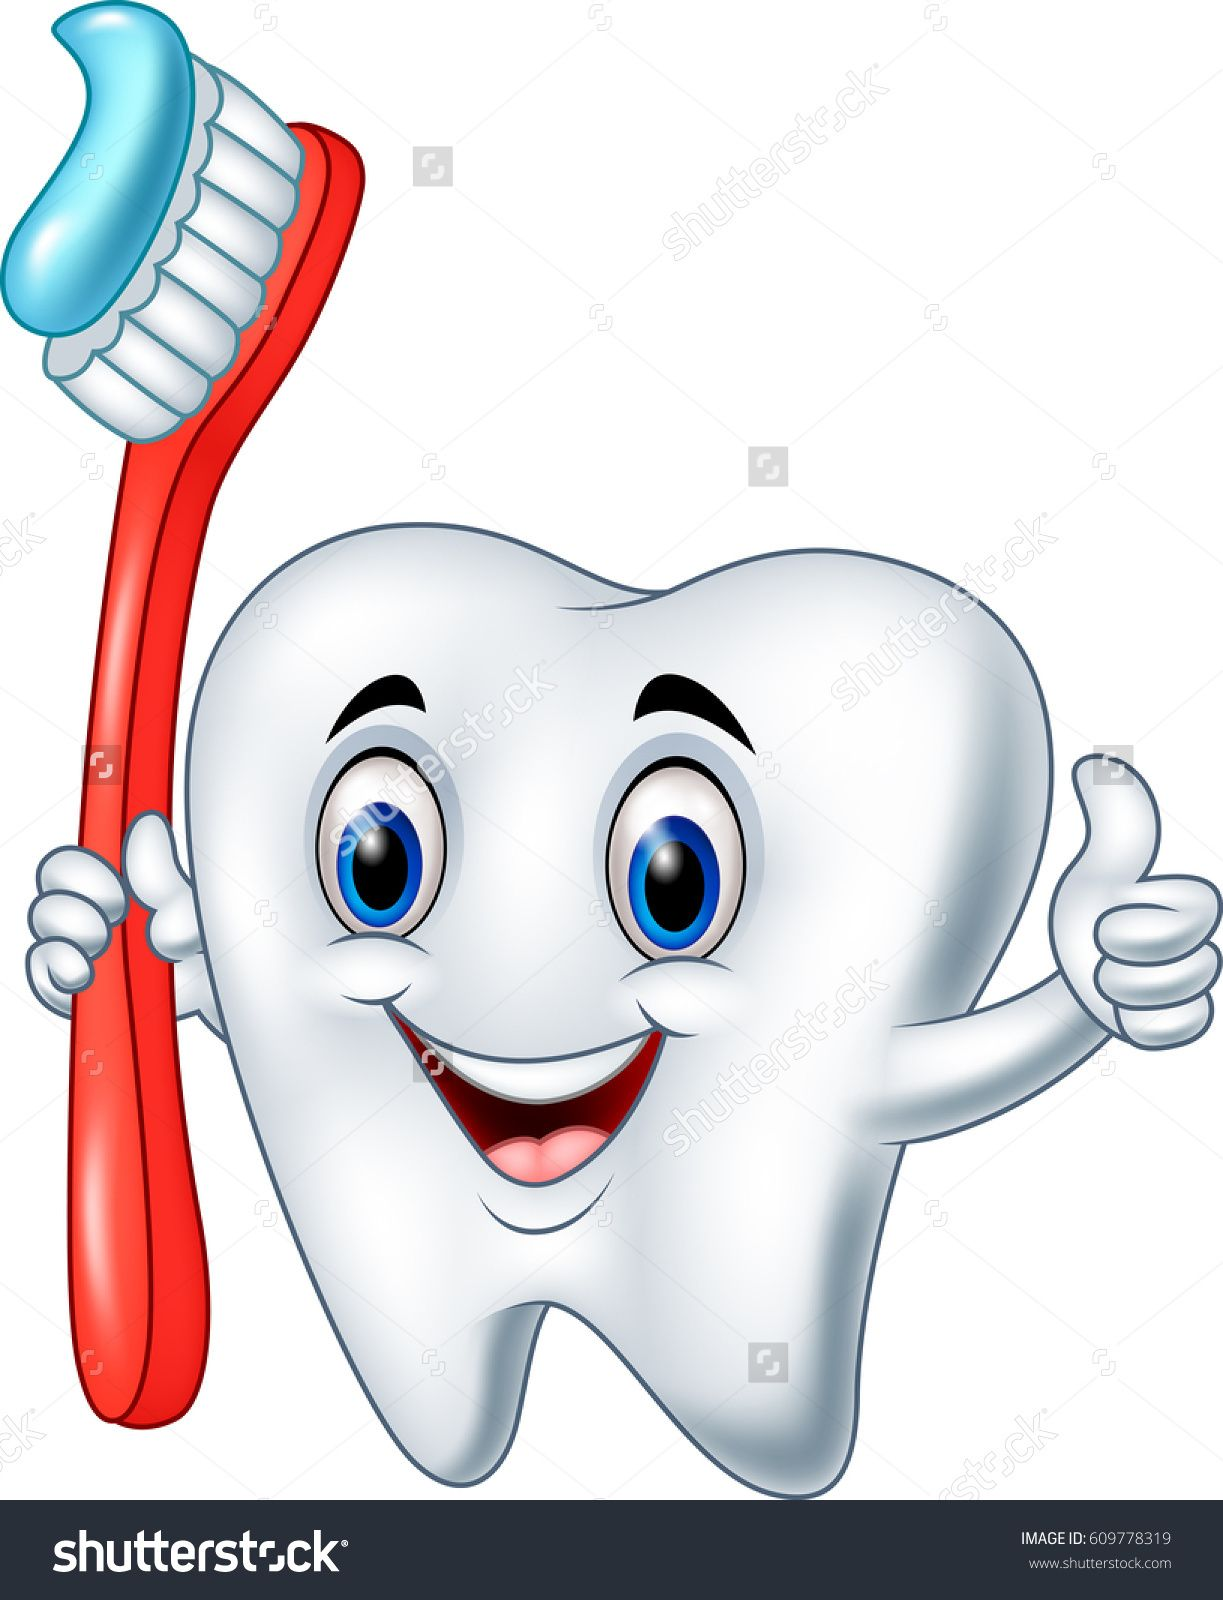 small resolution of cartoon tooth holding a tooth brush giving thumb up